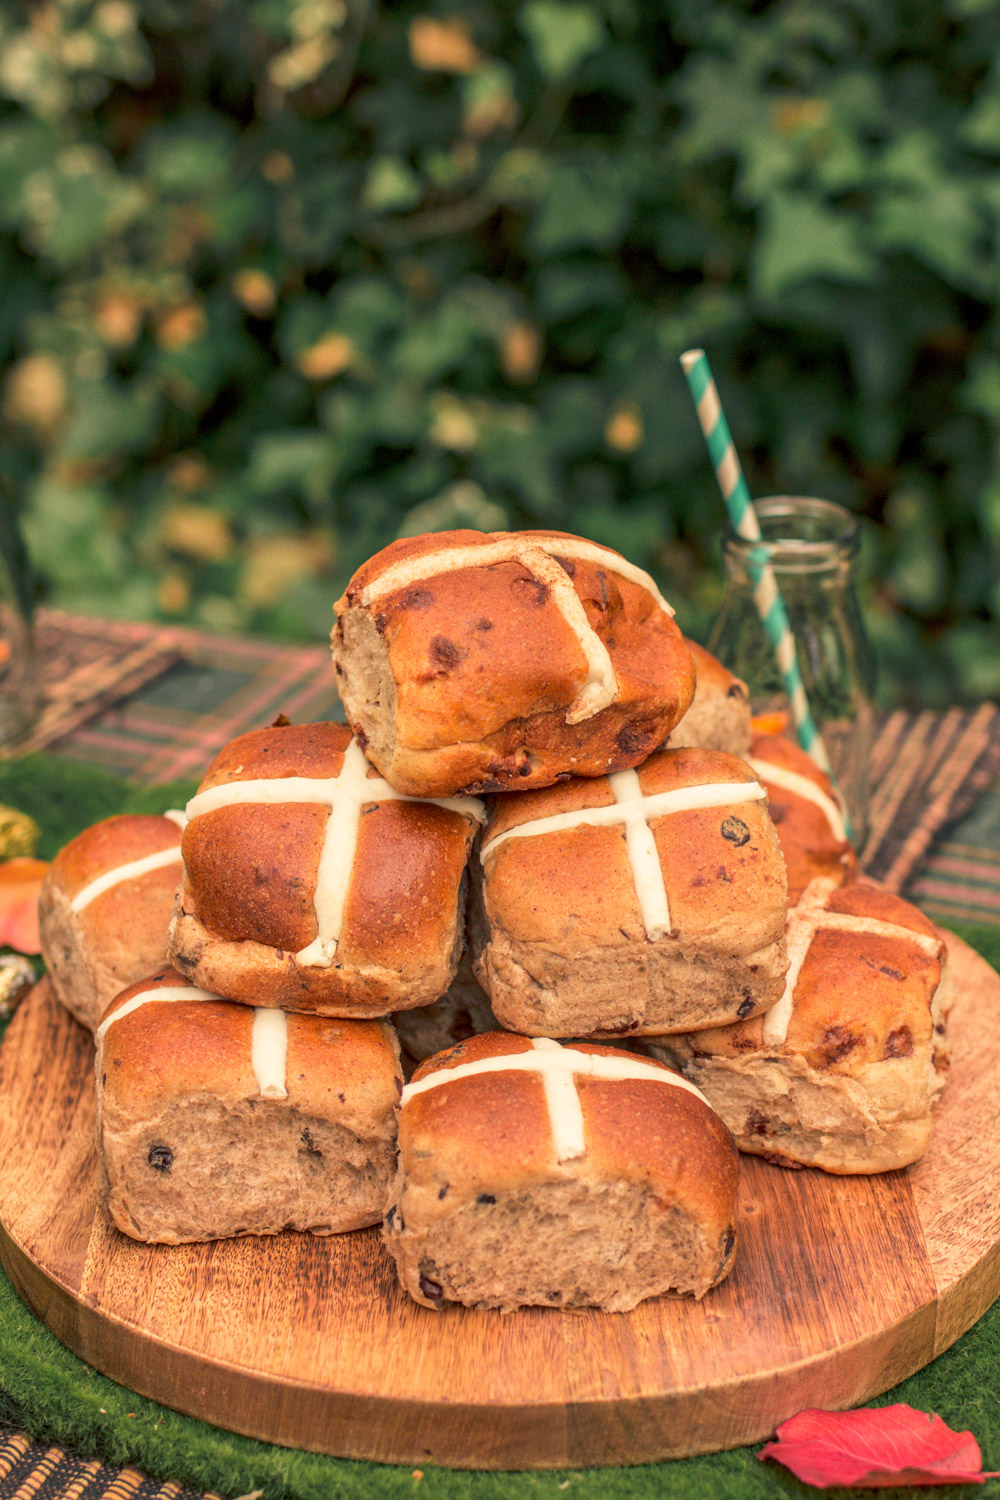 Bakers Delight Hot Cross Buns at Autumn Easter Egg Hunt